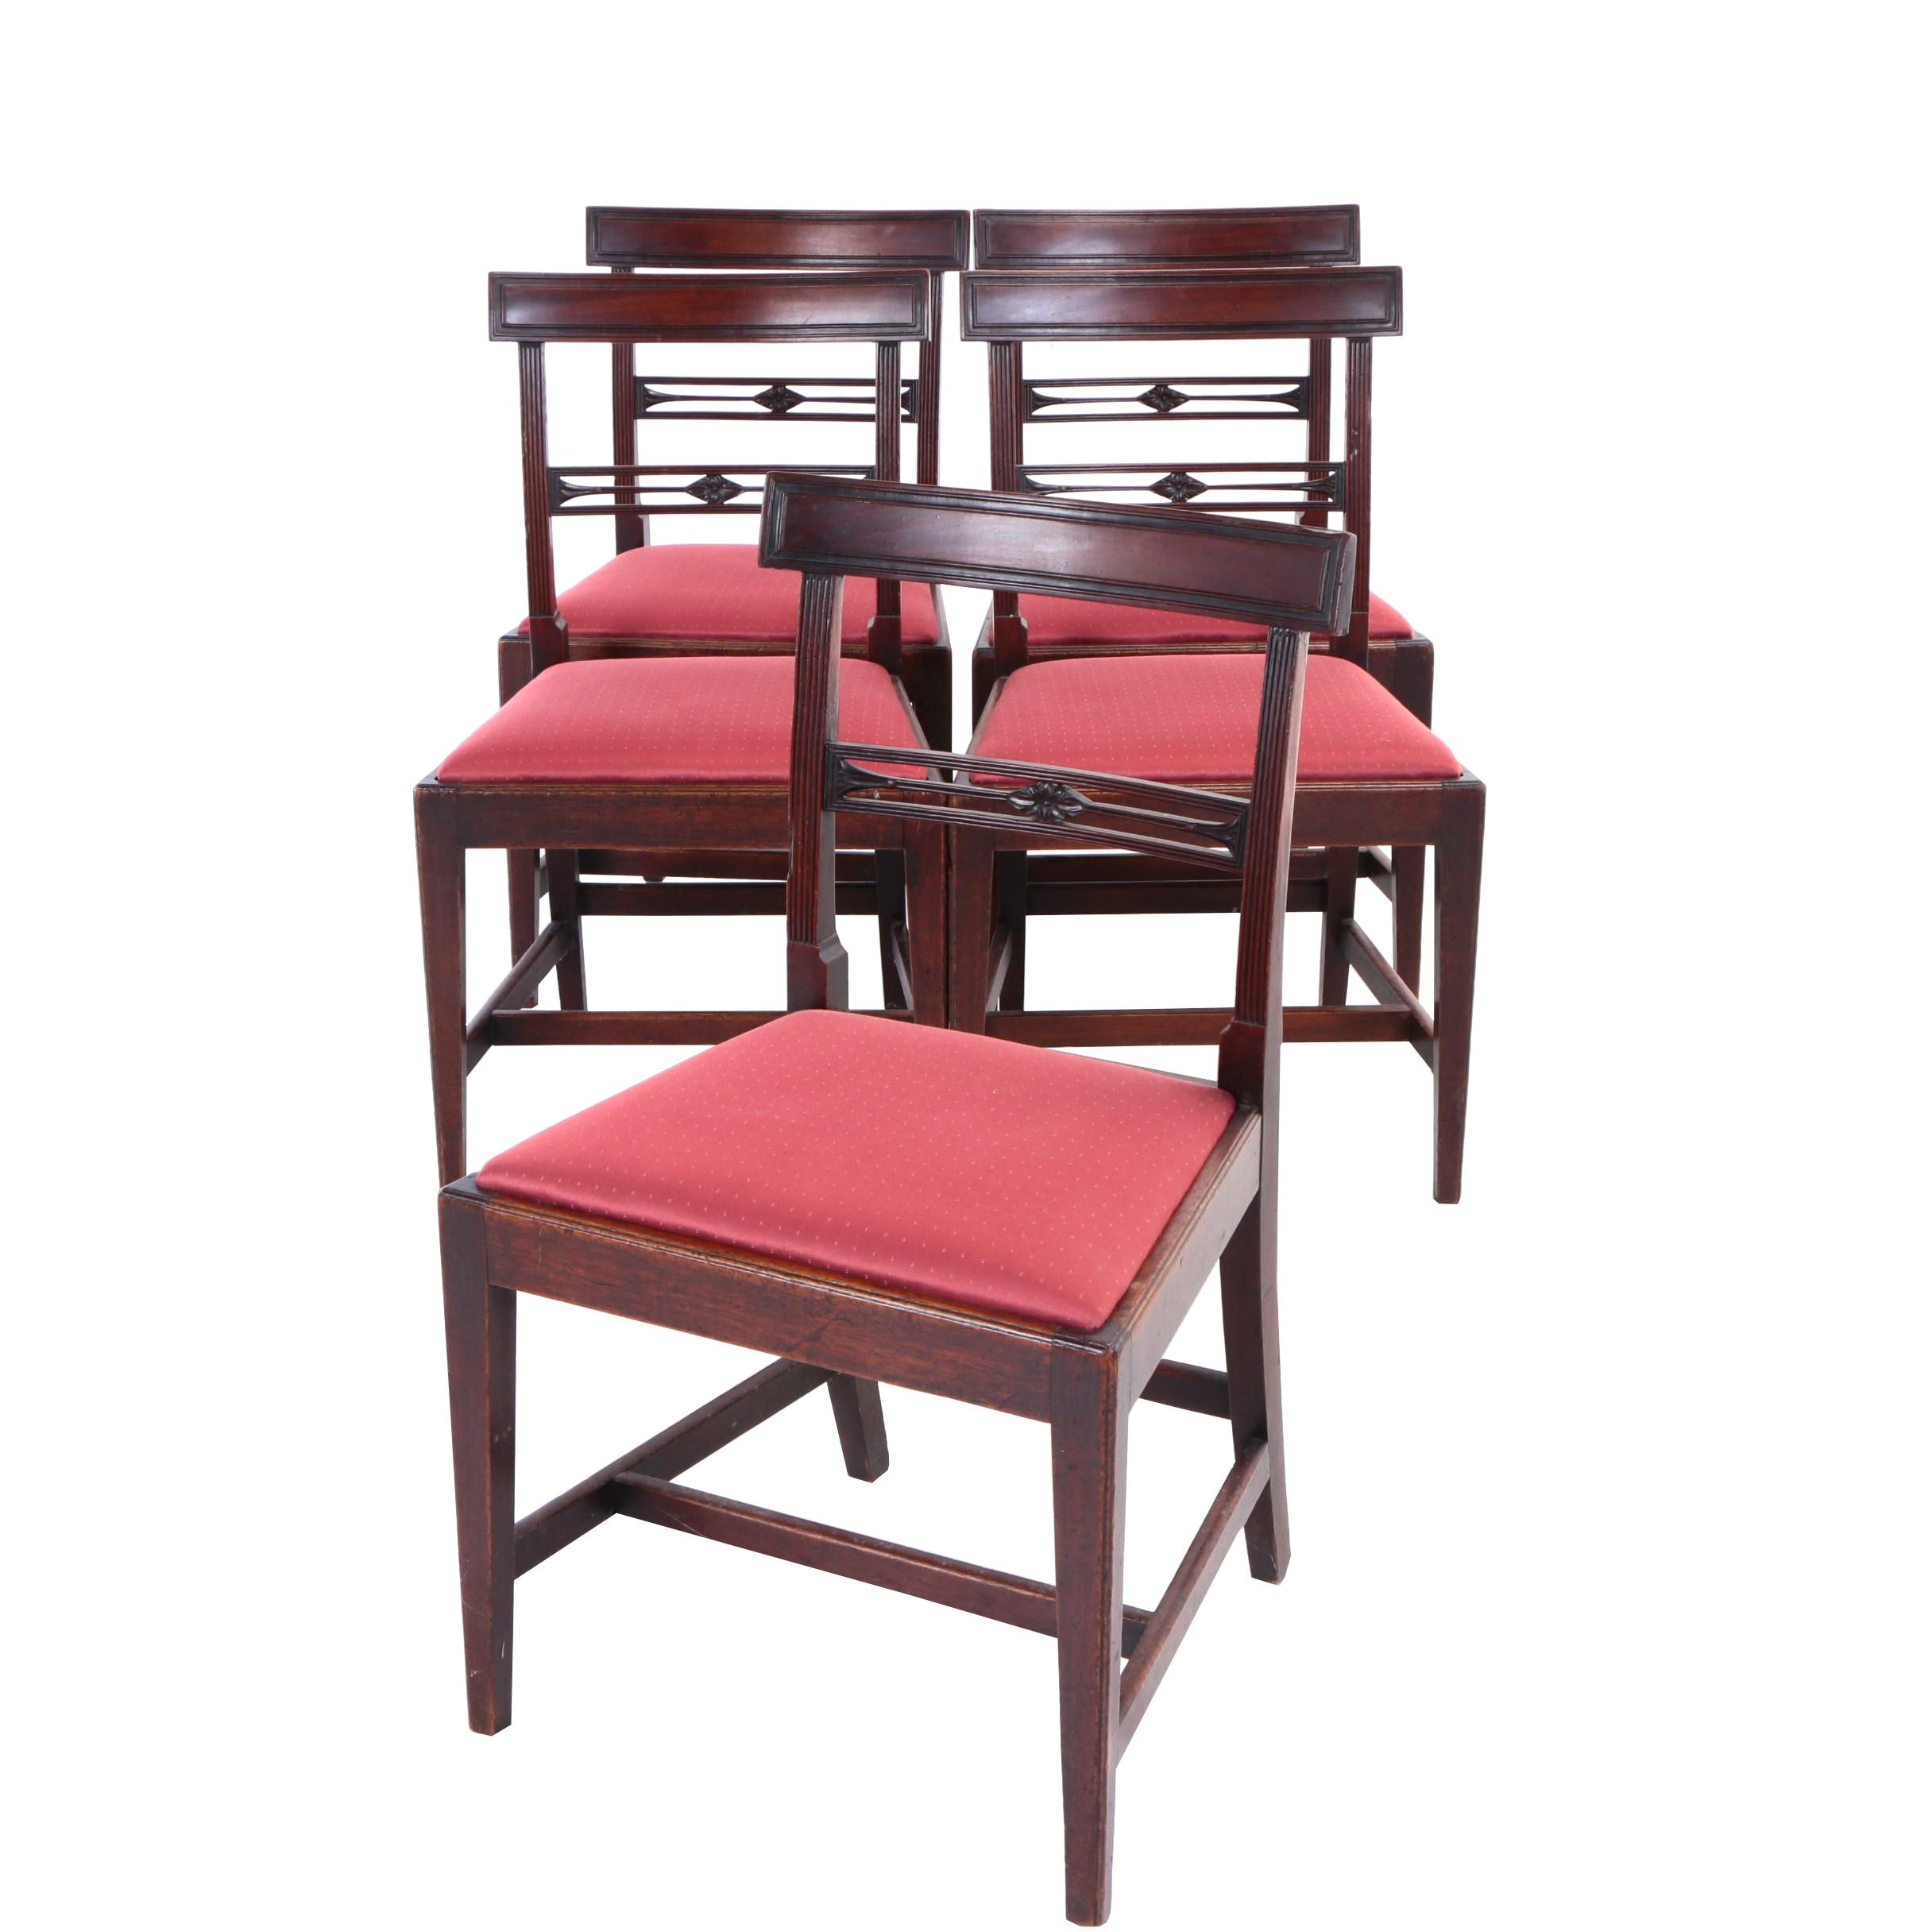 Five Carved Mahogany Dining Side Chairs, Probably English, 19th Century